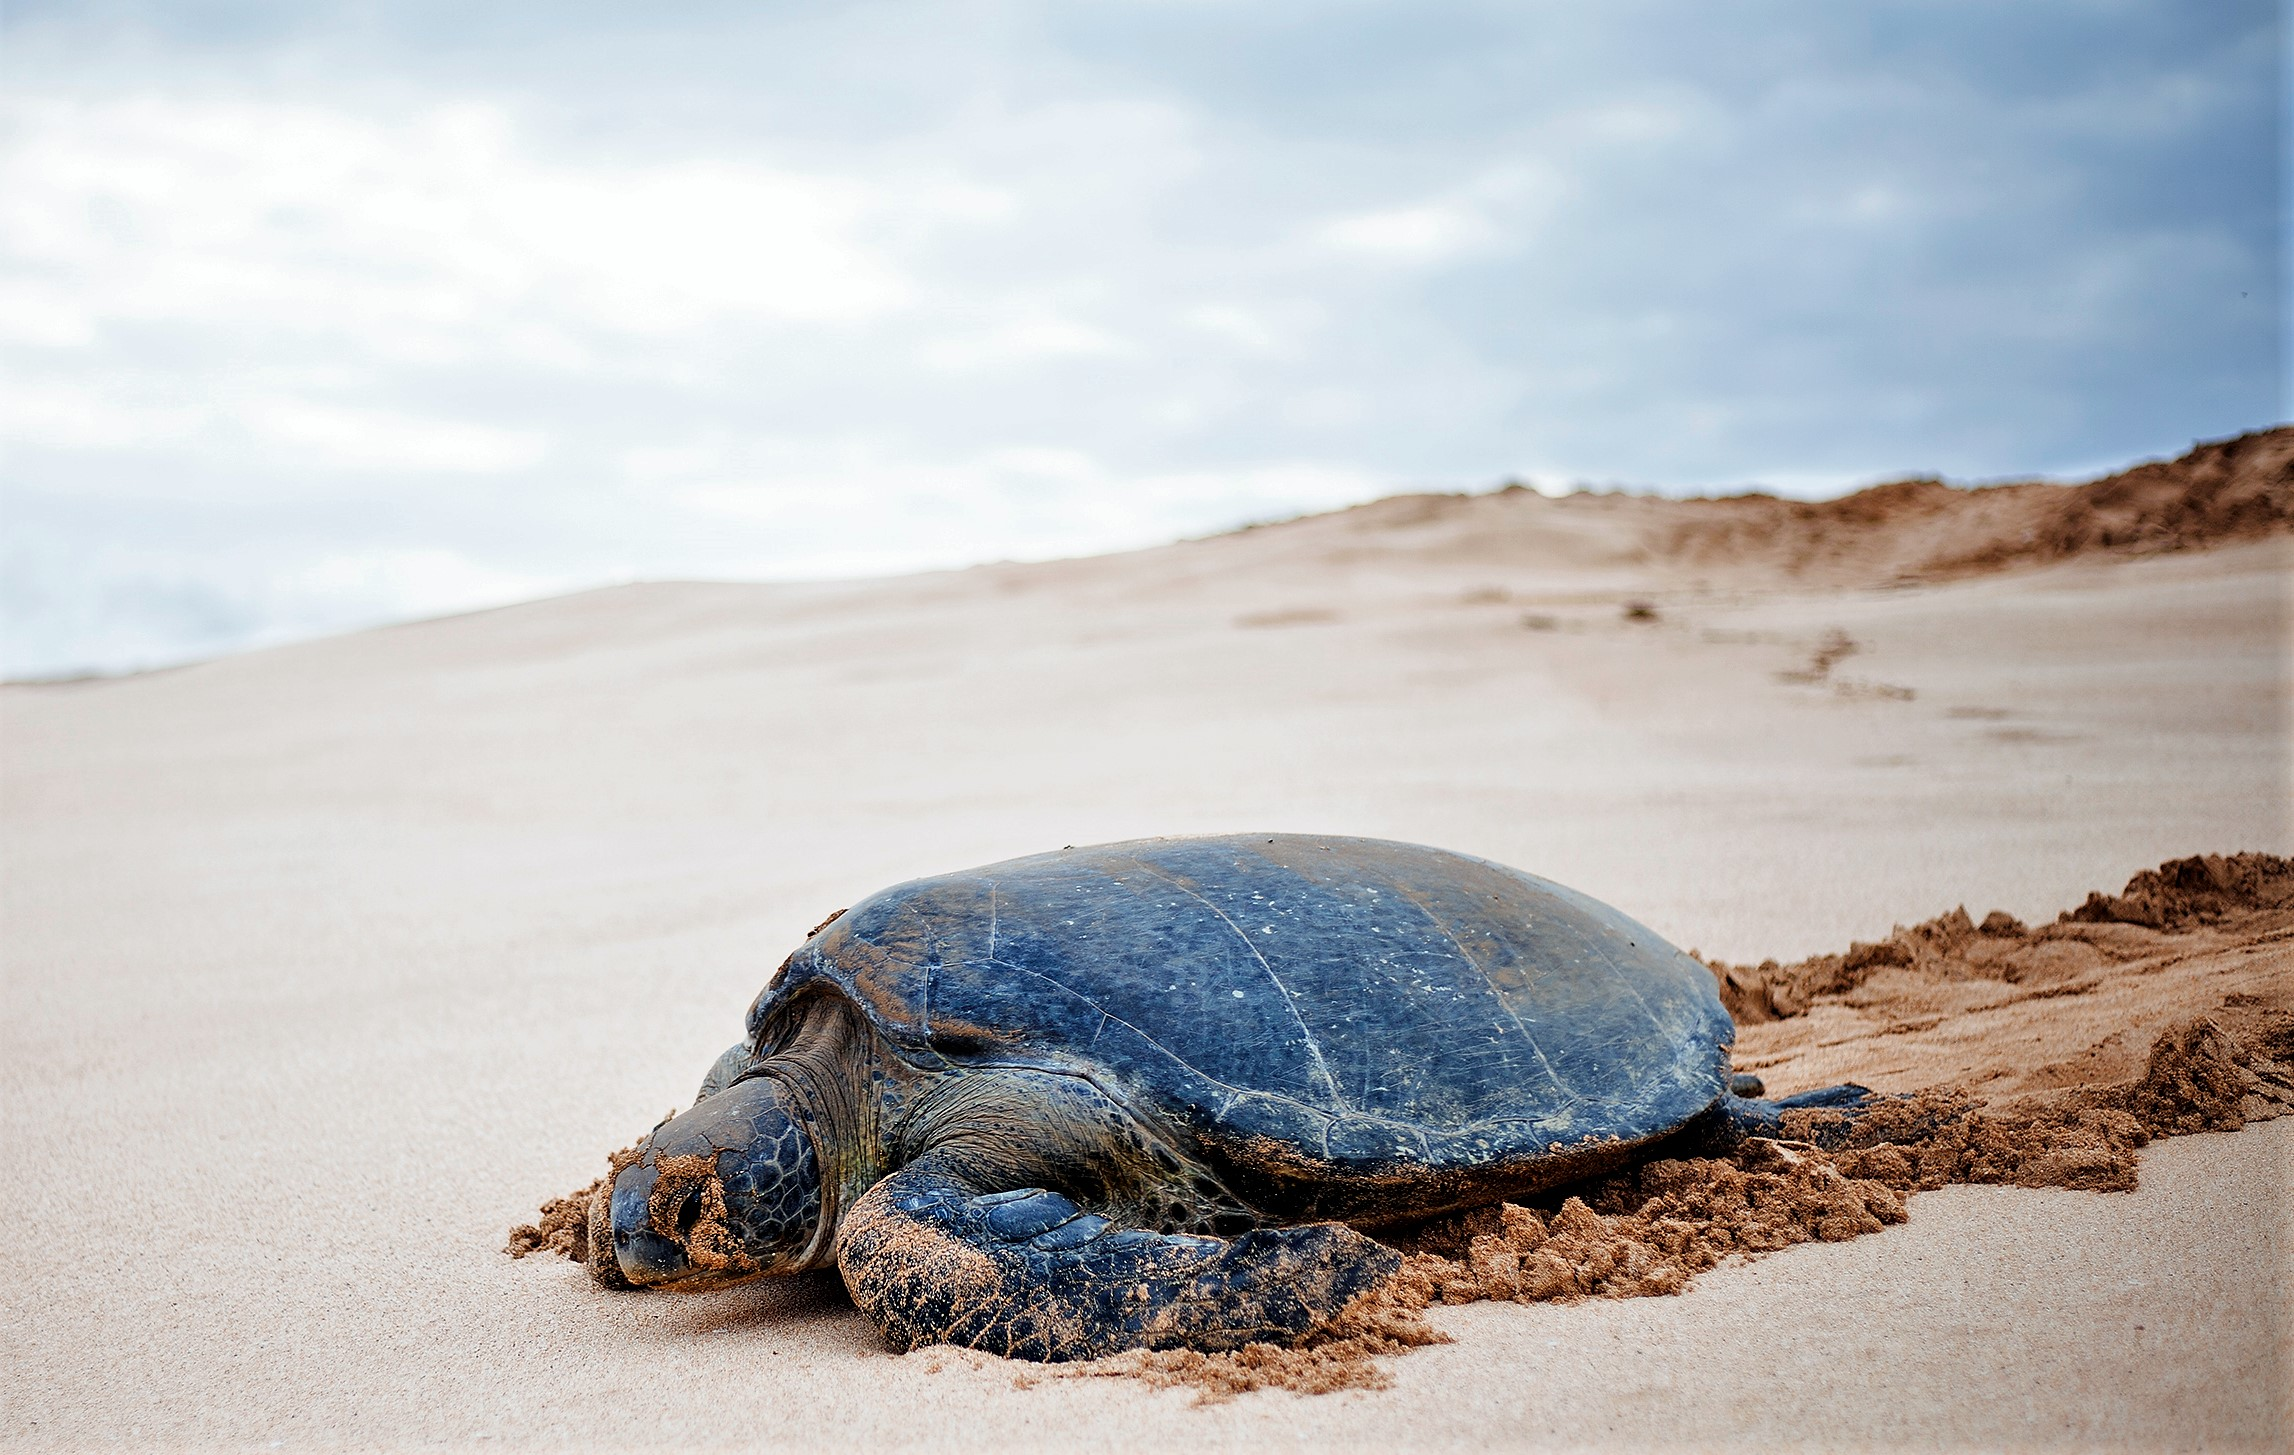 A female green turtle makes its way back to the ocean after laying its eggs.